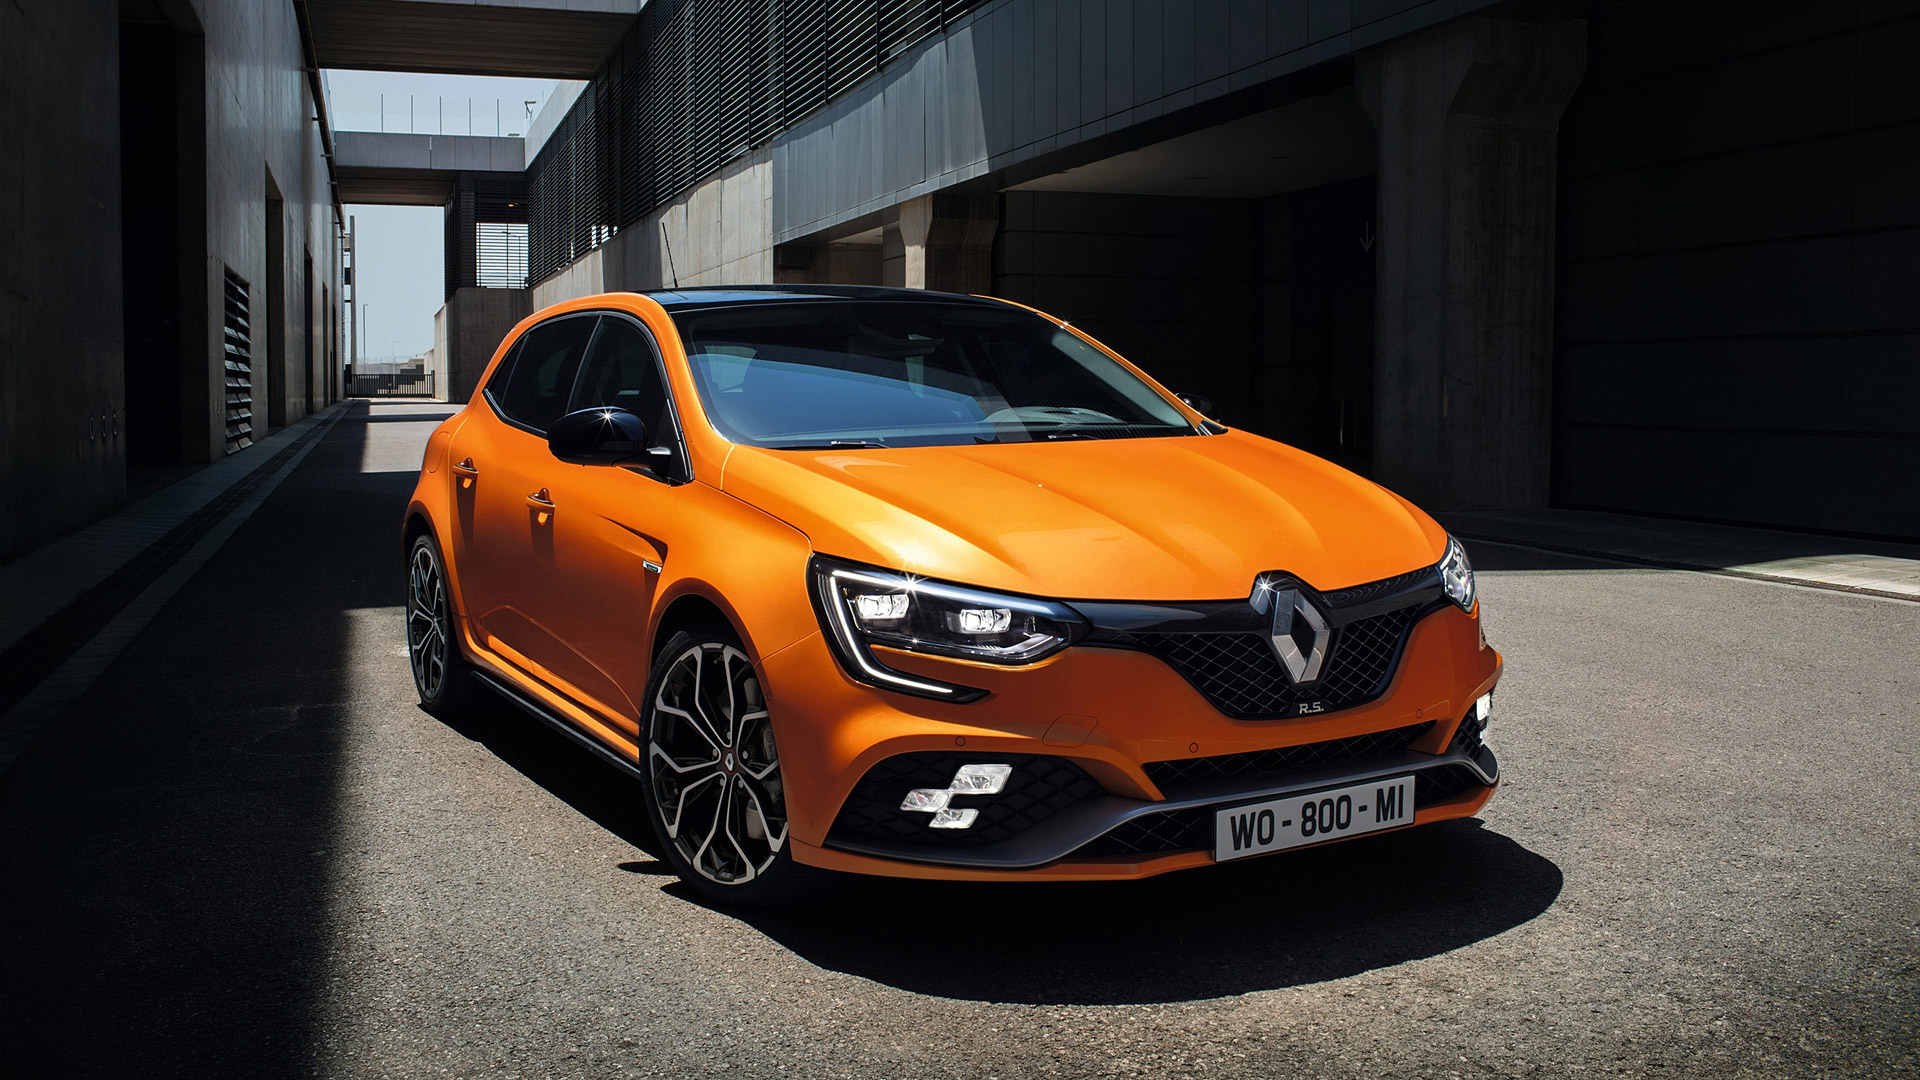 1920x1080 - Renault RS Wallpapers 1